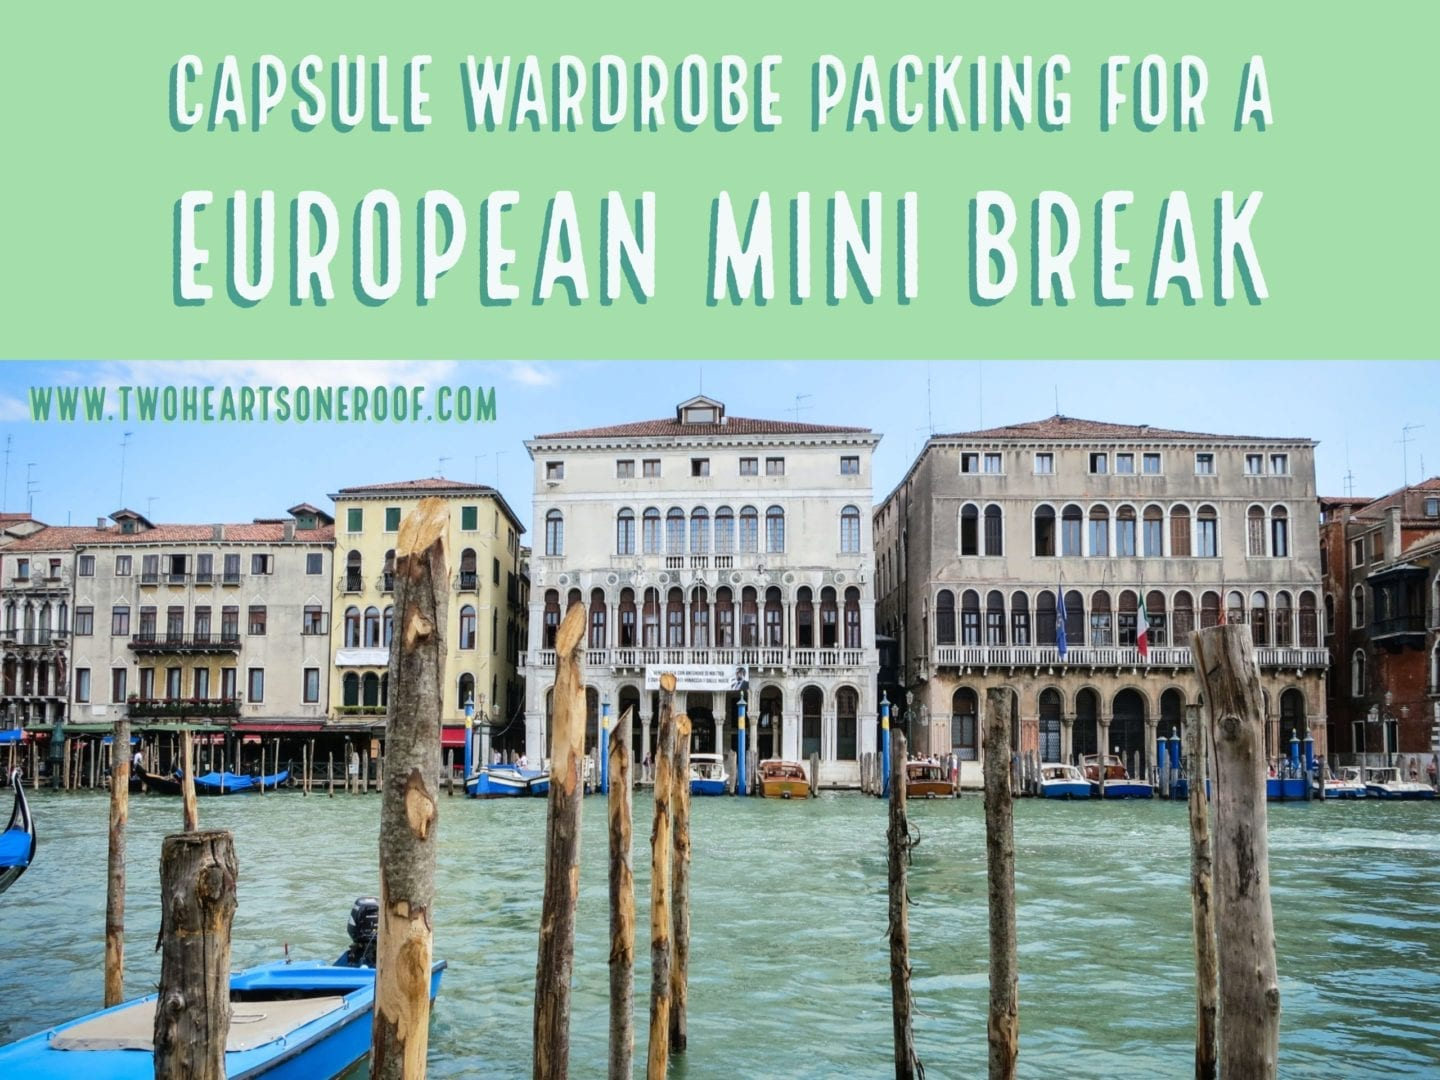 Capsule Wardrobe Packing for a European Mini Break